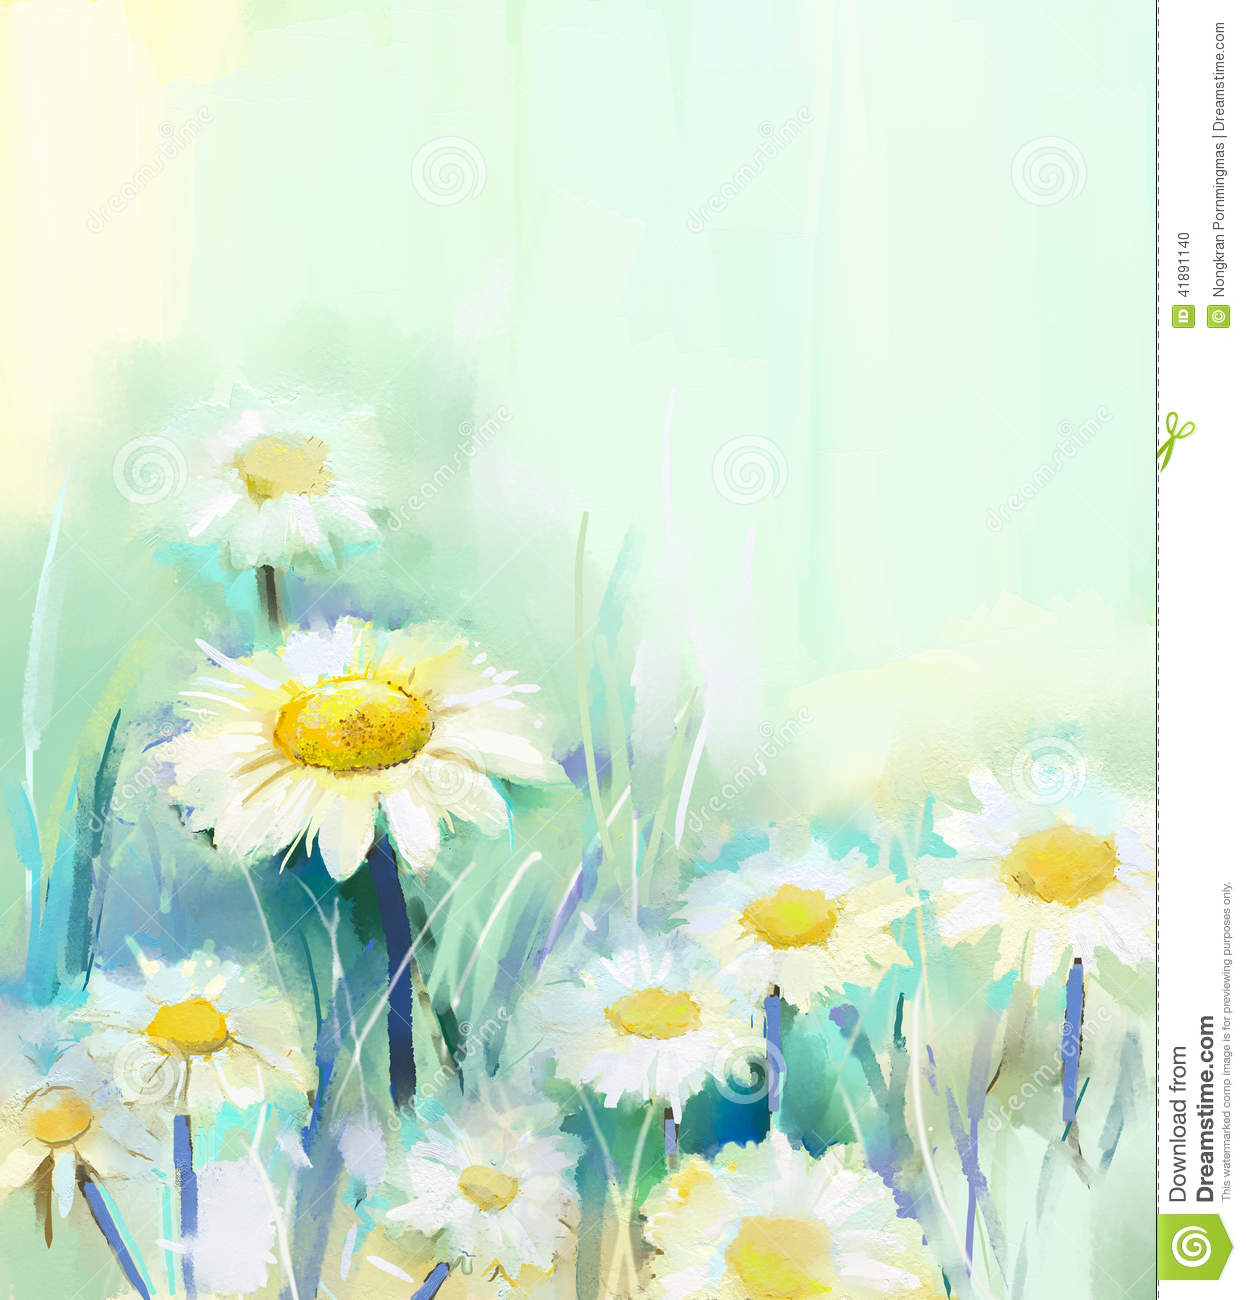 Abstract oil painting white flowers field in soft color stock oil painting white daisy flowers in field stock photo mightylinksfo